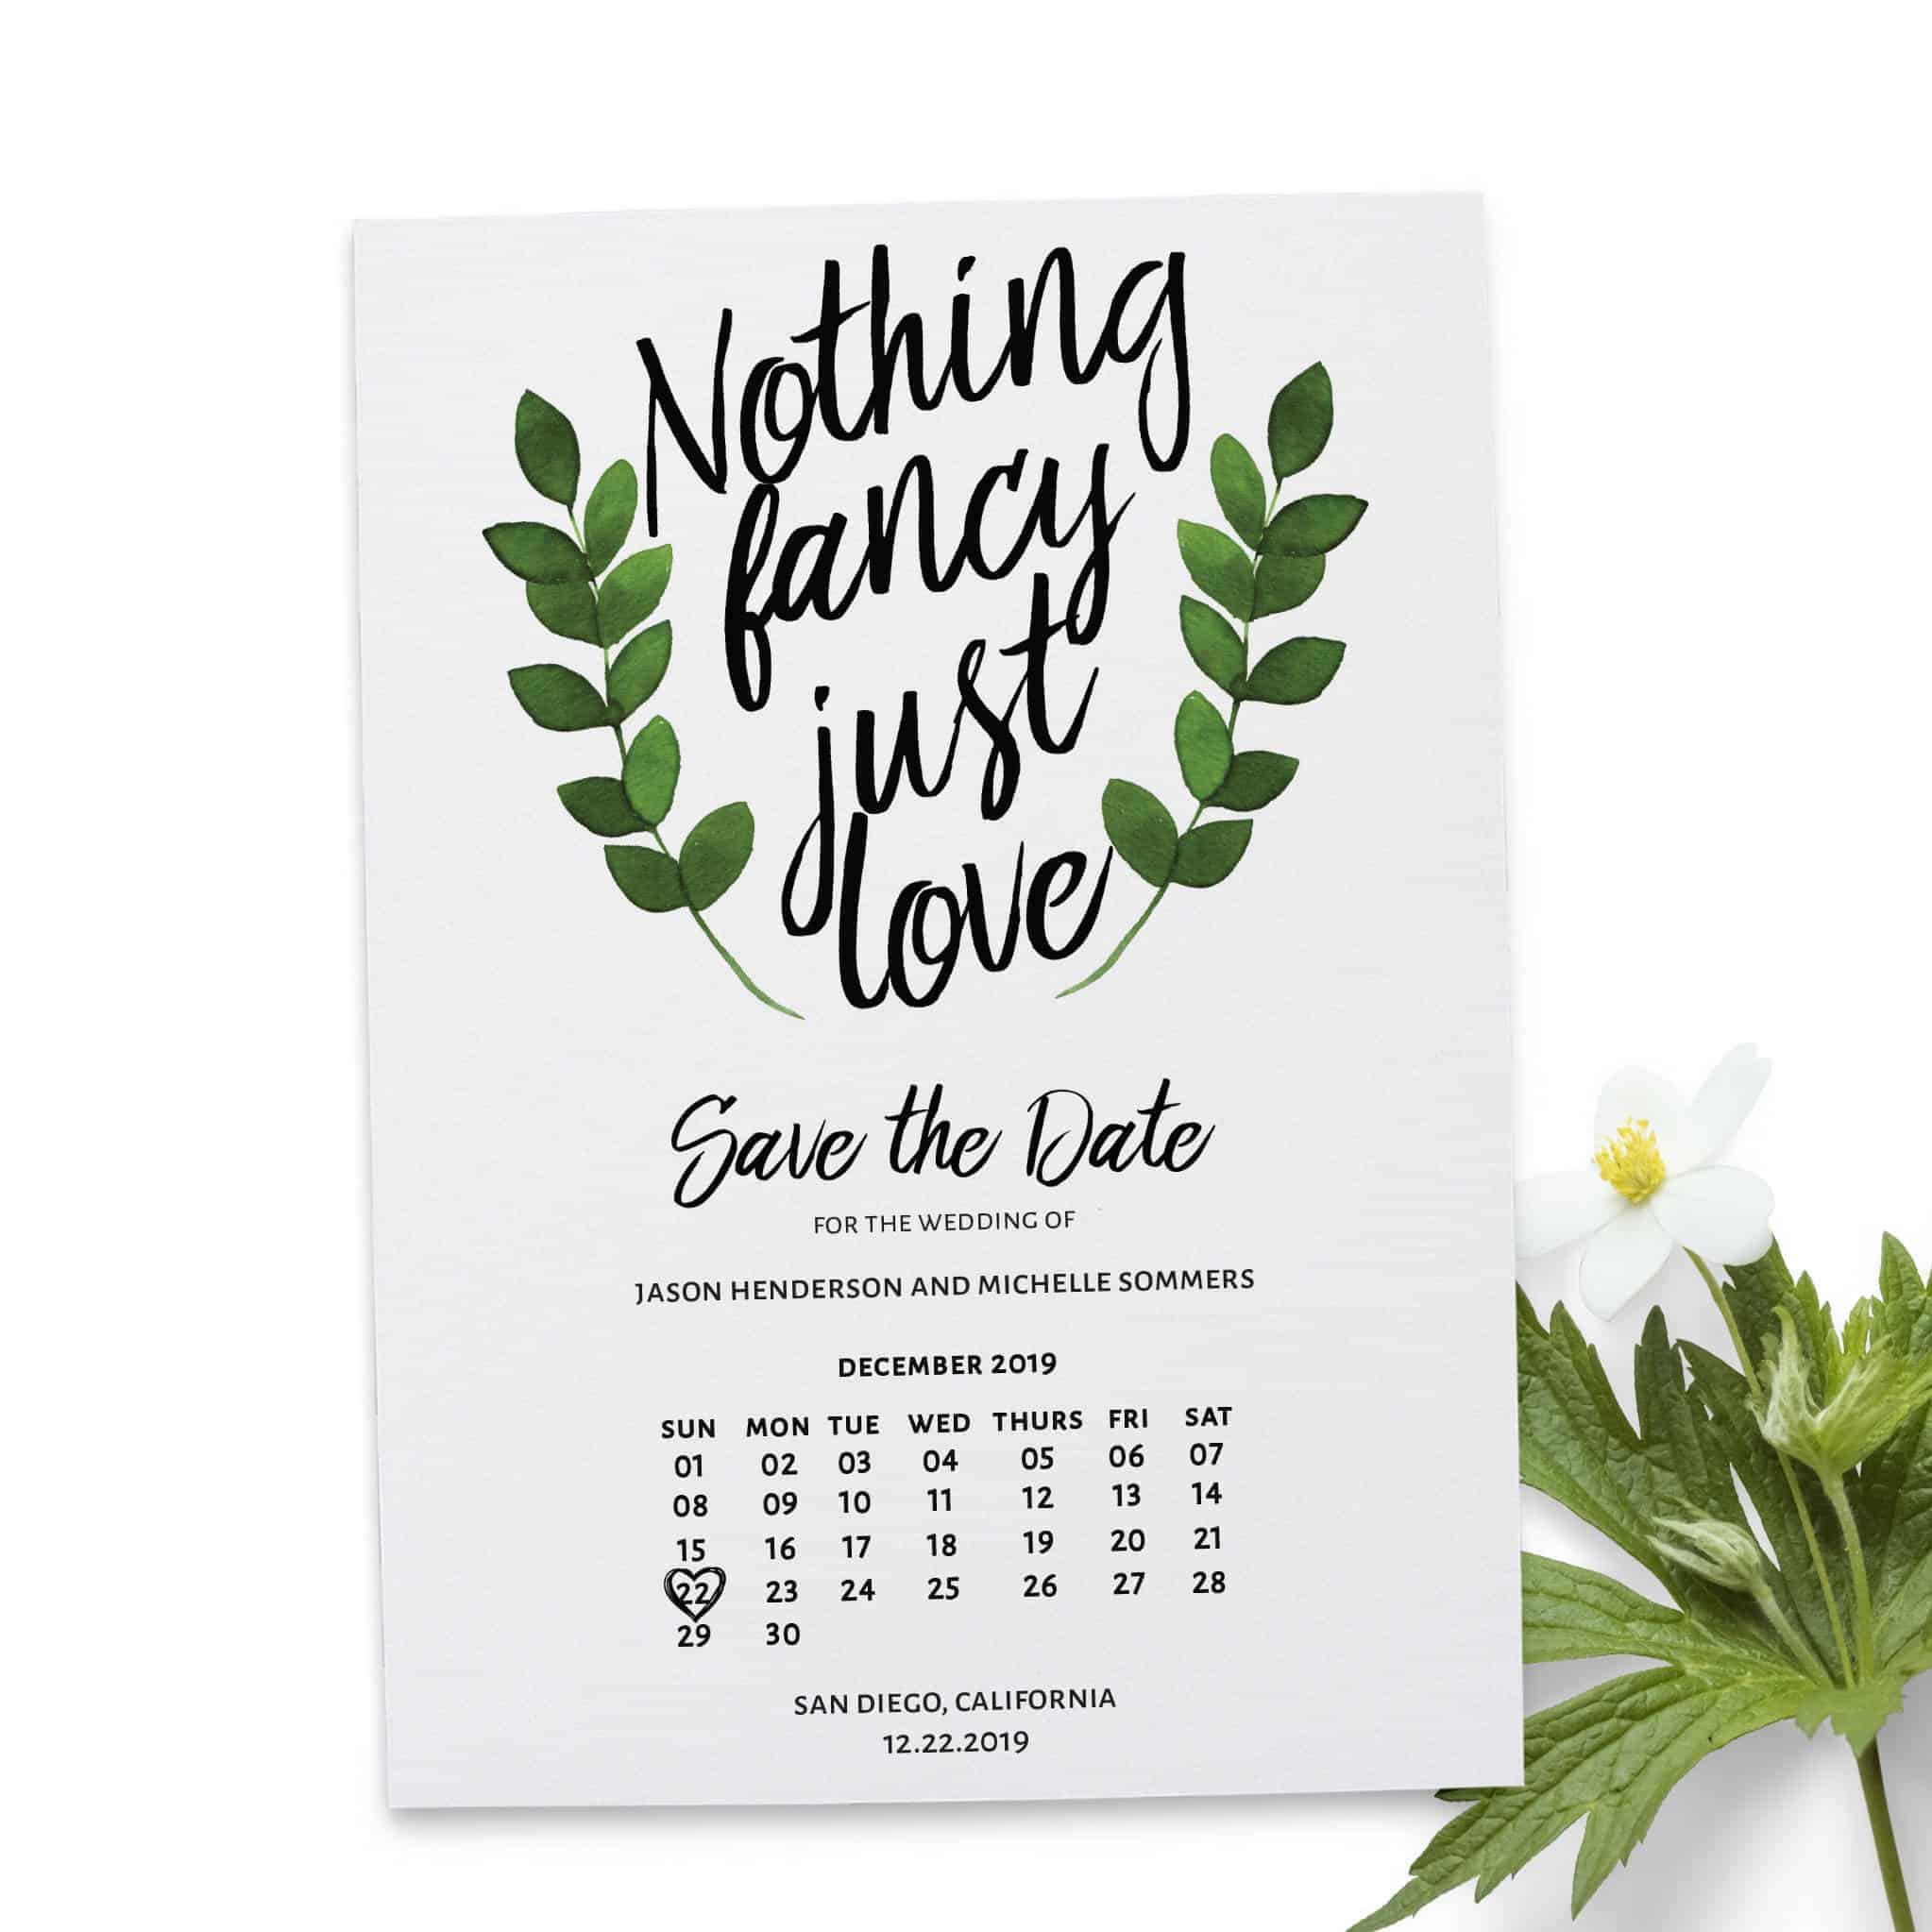 Nothing Fancy Just Love Save the Date Wedding Cards